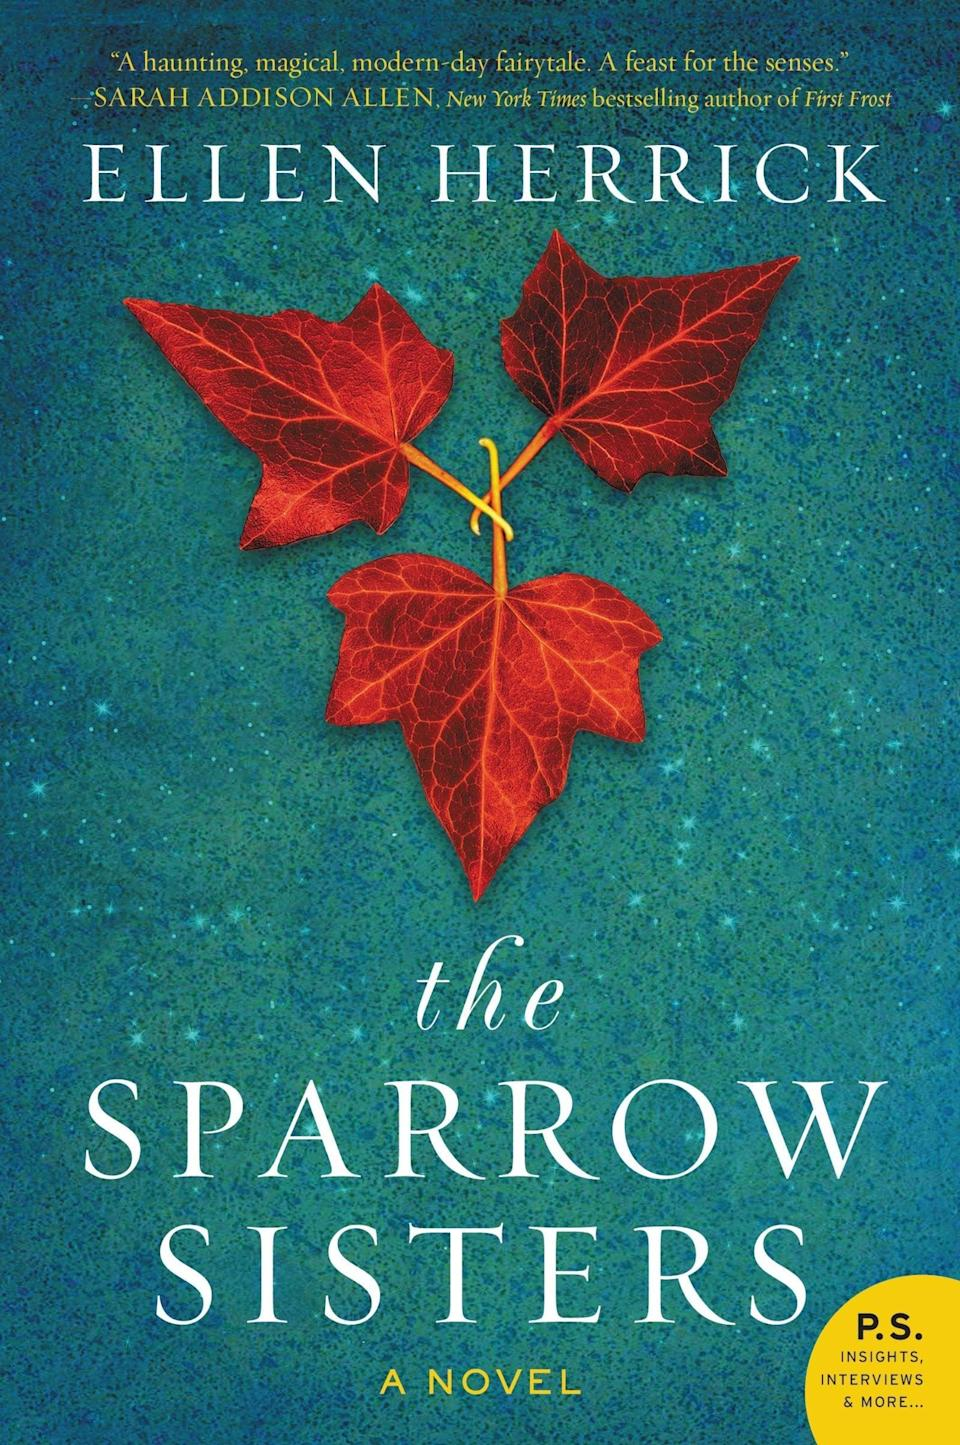 """<p>We know you're not supposed to judge a book by its cover, but Ellen Herrick's <span><strong>The Sparrow Sisters</strong></span> cover screams Fall so loud that we can't help it. Thanks to an atmospheric New England setting, a healthy dash of magic, and a mystery that draws in the titular sisters, this book is a delightful and just ever so slightly spooky read (think <a href=""""https://www.popsugar.com/entertainment/Novels-Witches-45349696"""" class=""""link rapid-noclick-resp"""" rel=""""nofollow noopener"""" target=""""_blank"""" data-ylk=""""slk:Practical Magic""""><strong>Practical Magic</strong></a>).</p>"""